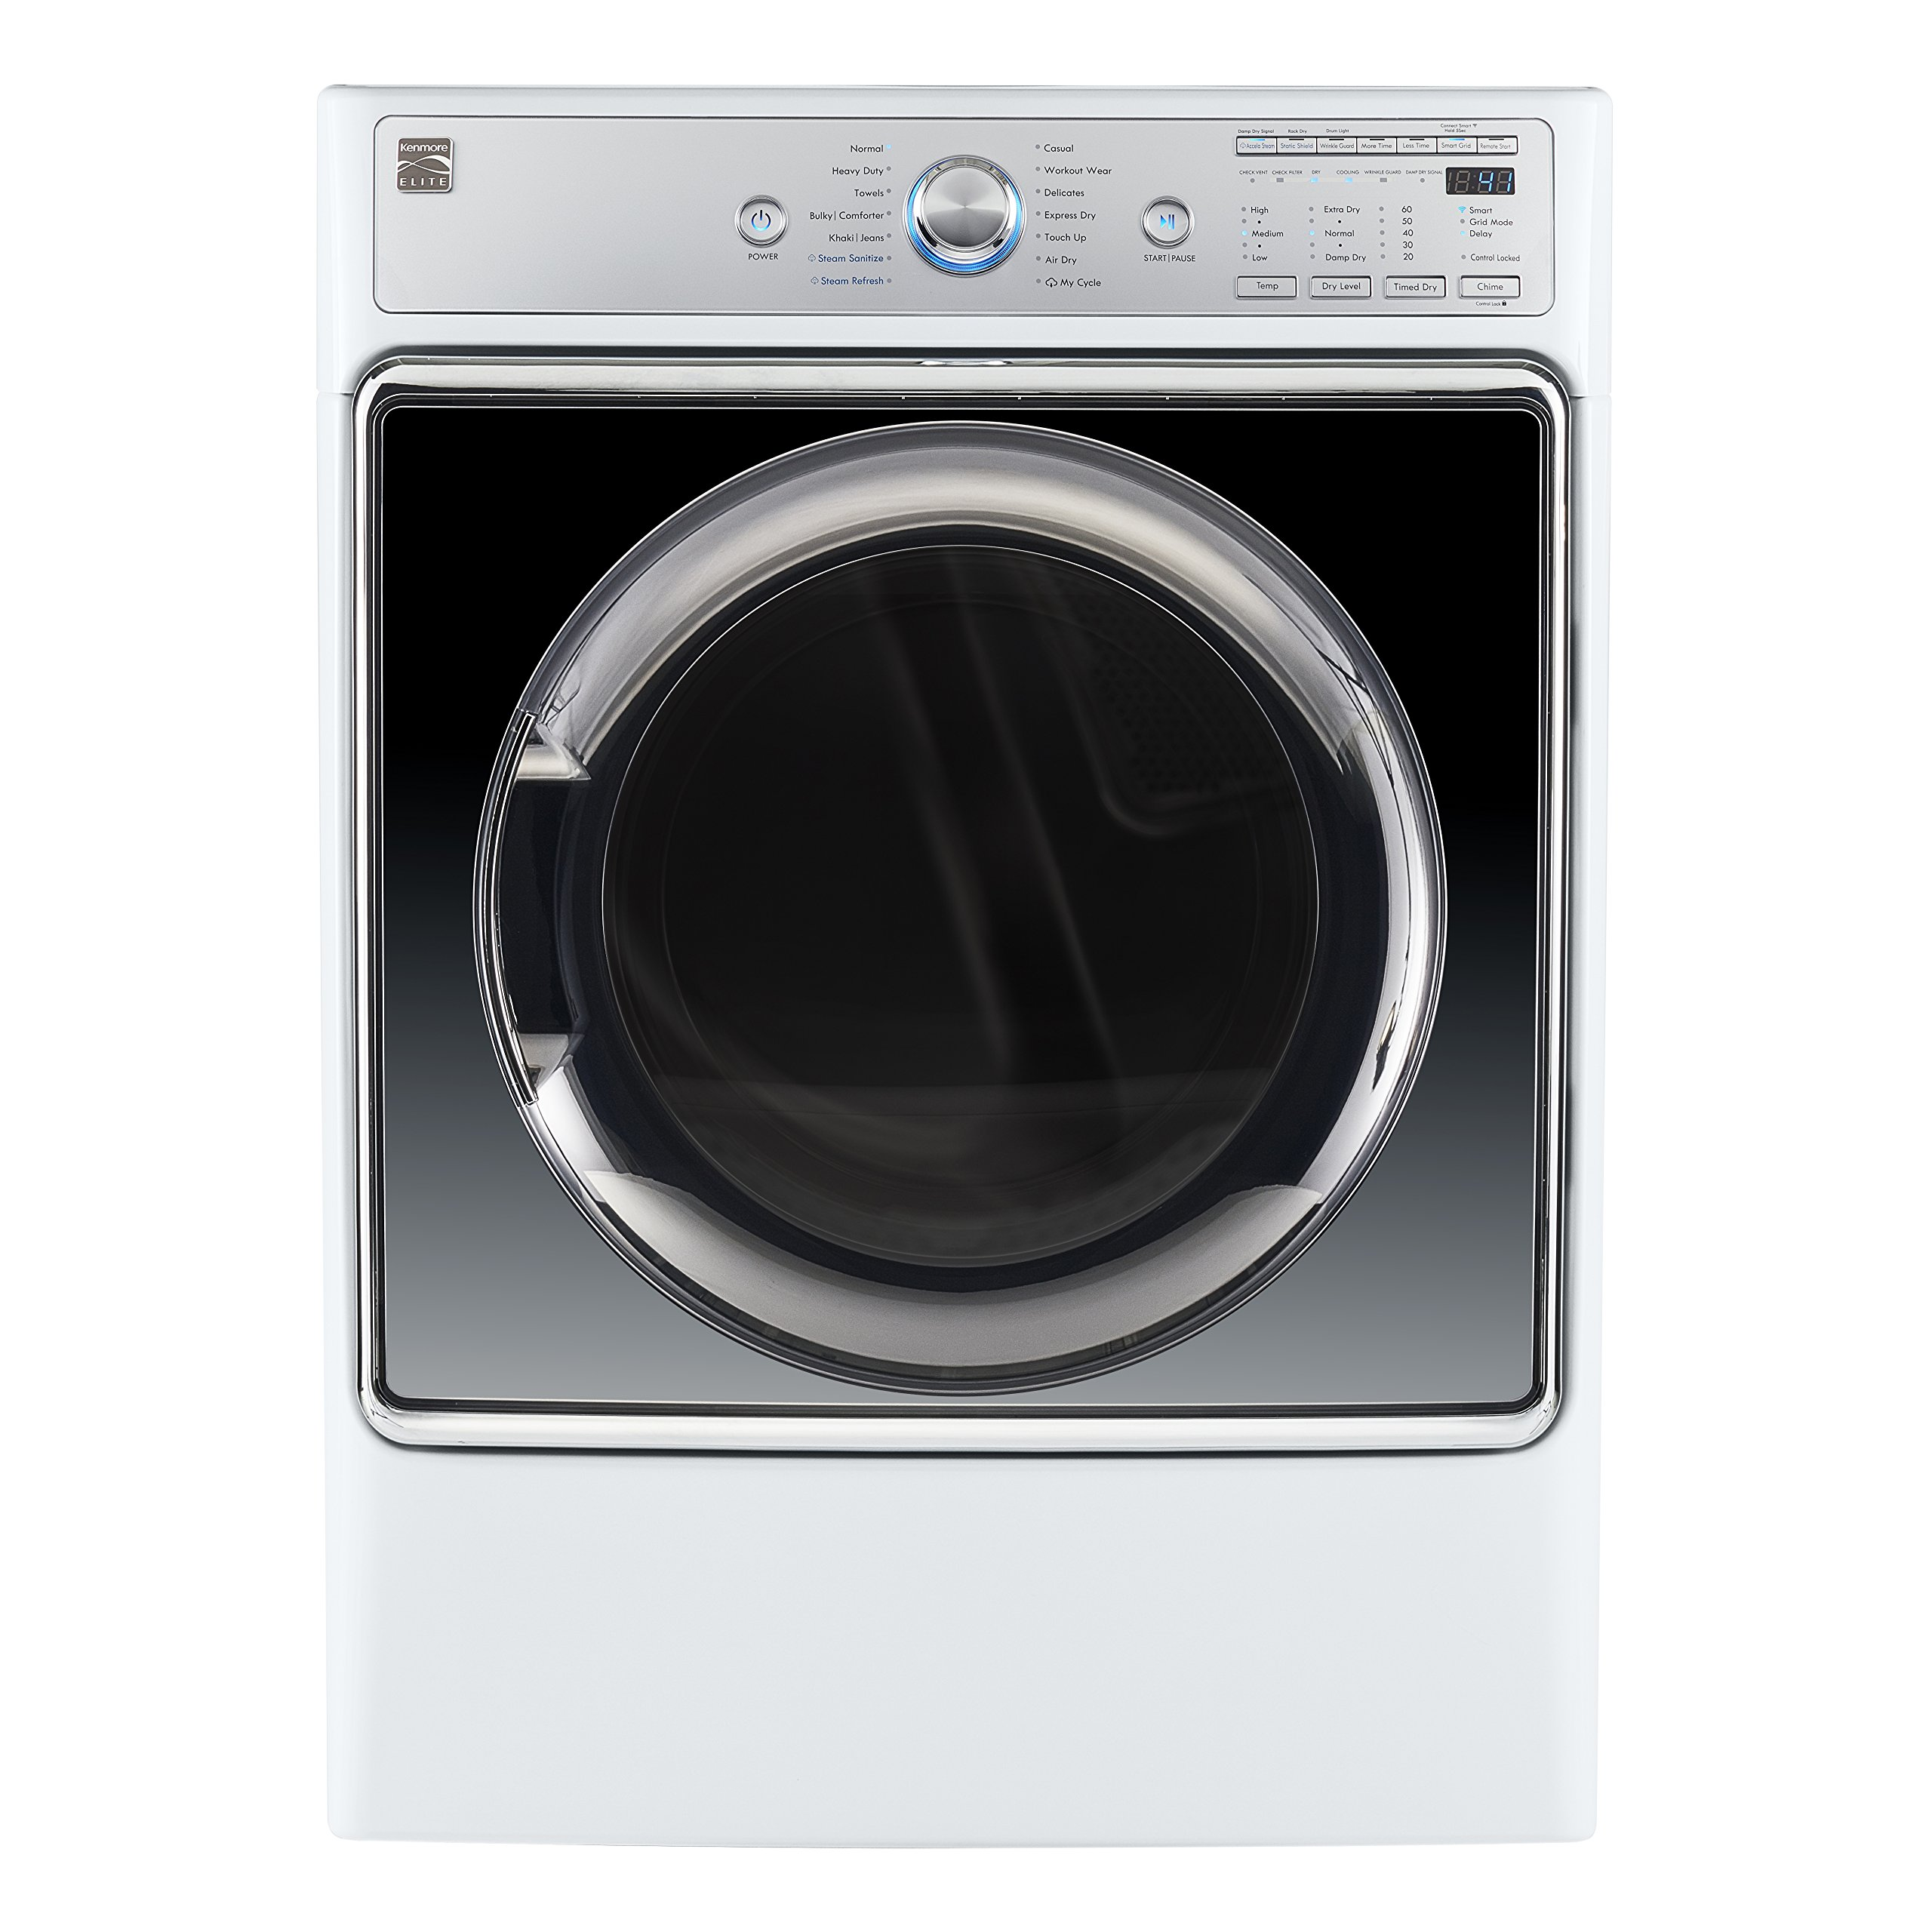 Kenmore Smart 91982 9.0 cu. ft. Gas Dryer with Accela Steam Technology in White - Compatible with Amazon Alexa, includes delivery and hookup (Available in select cities only)